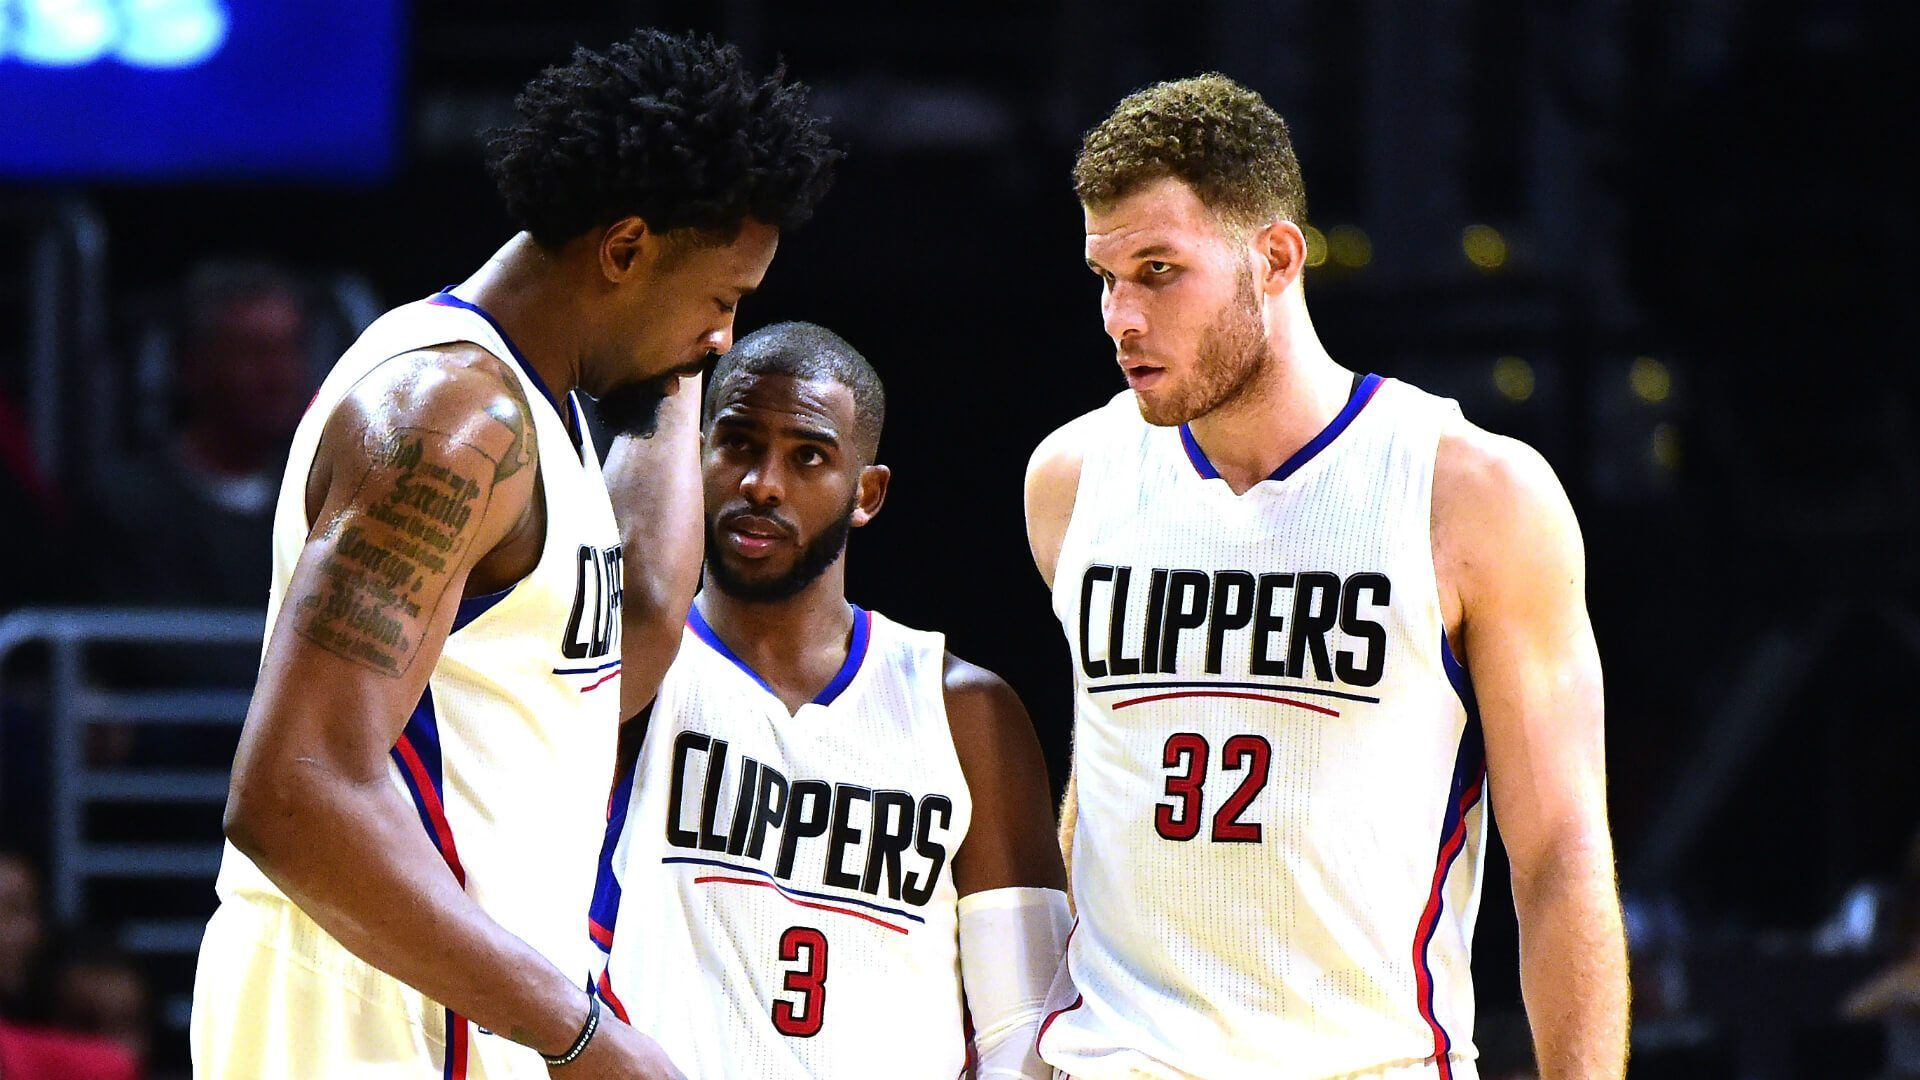 Clippers Fans Welcome Chris Paul Back With Blend Of Boos Heres To You Sports Clippers Clippers Depth Chart Clip Blake Griffin Chris Paul Los Angeles Clippers